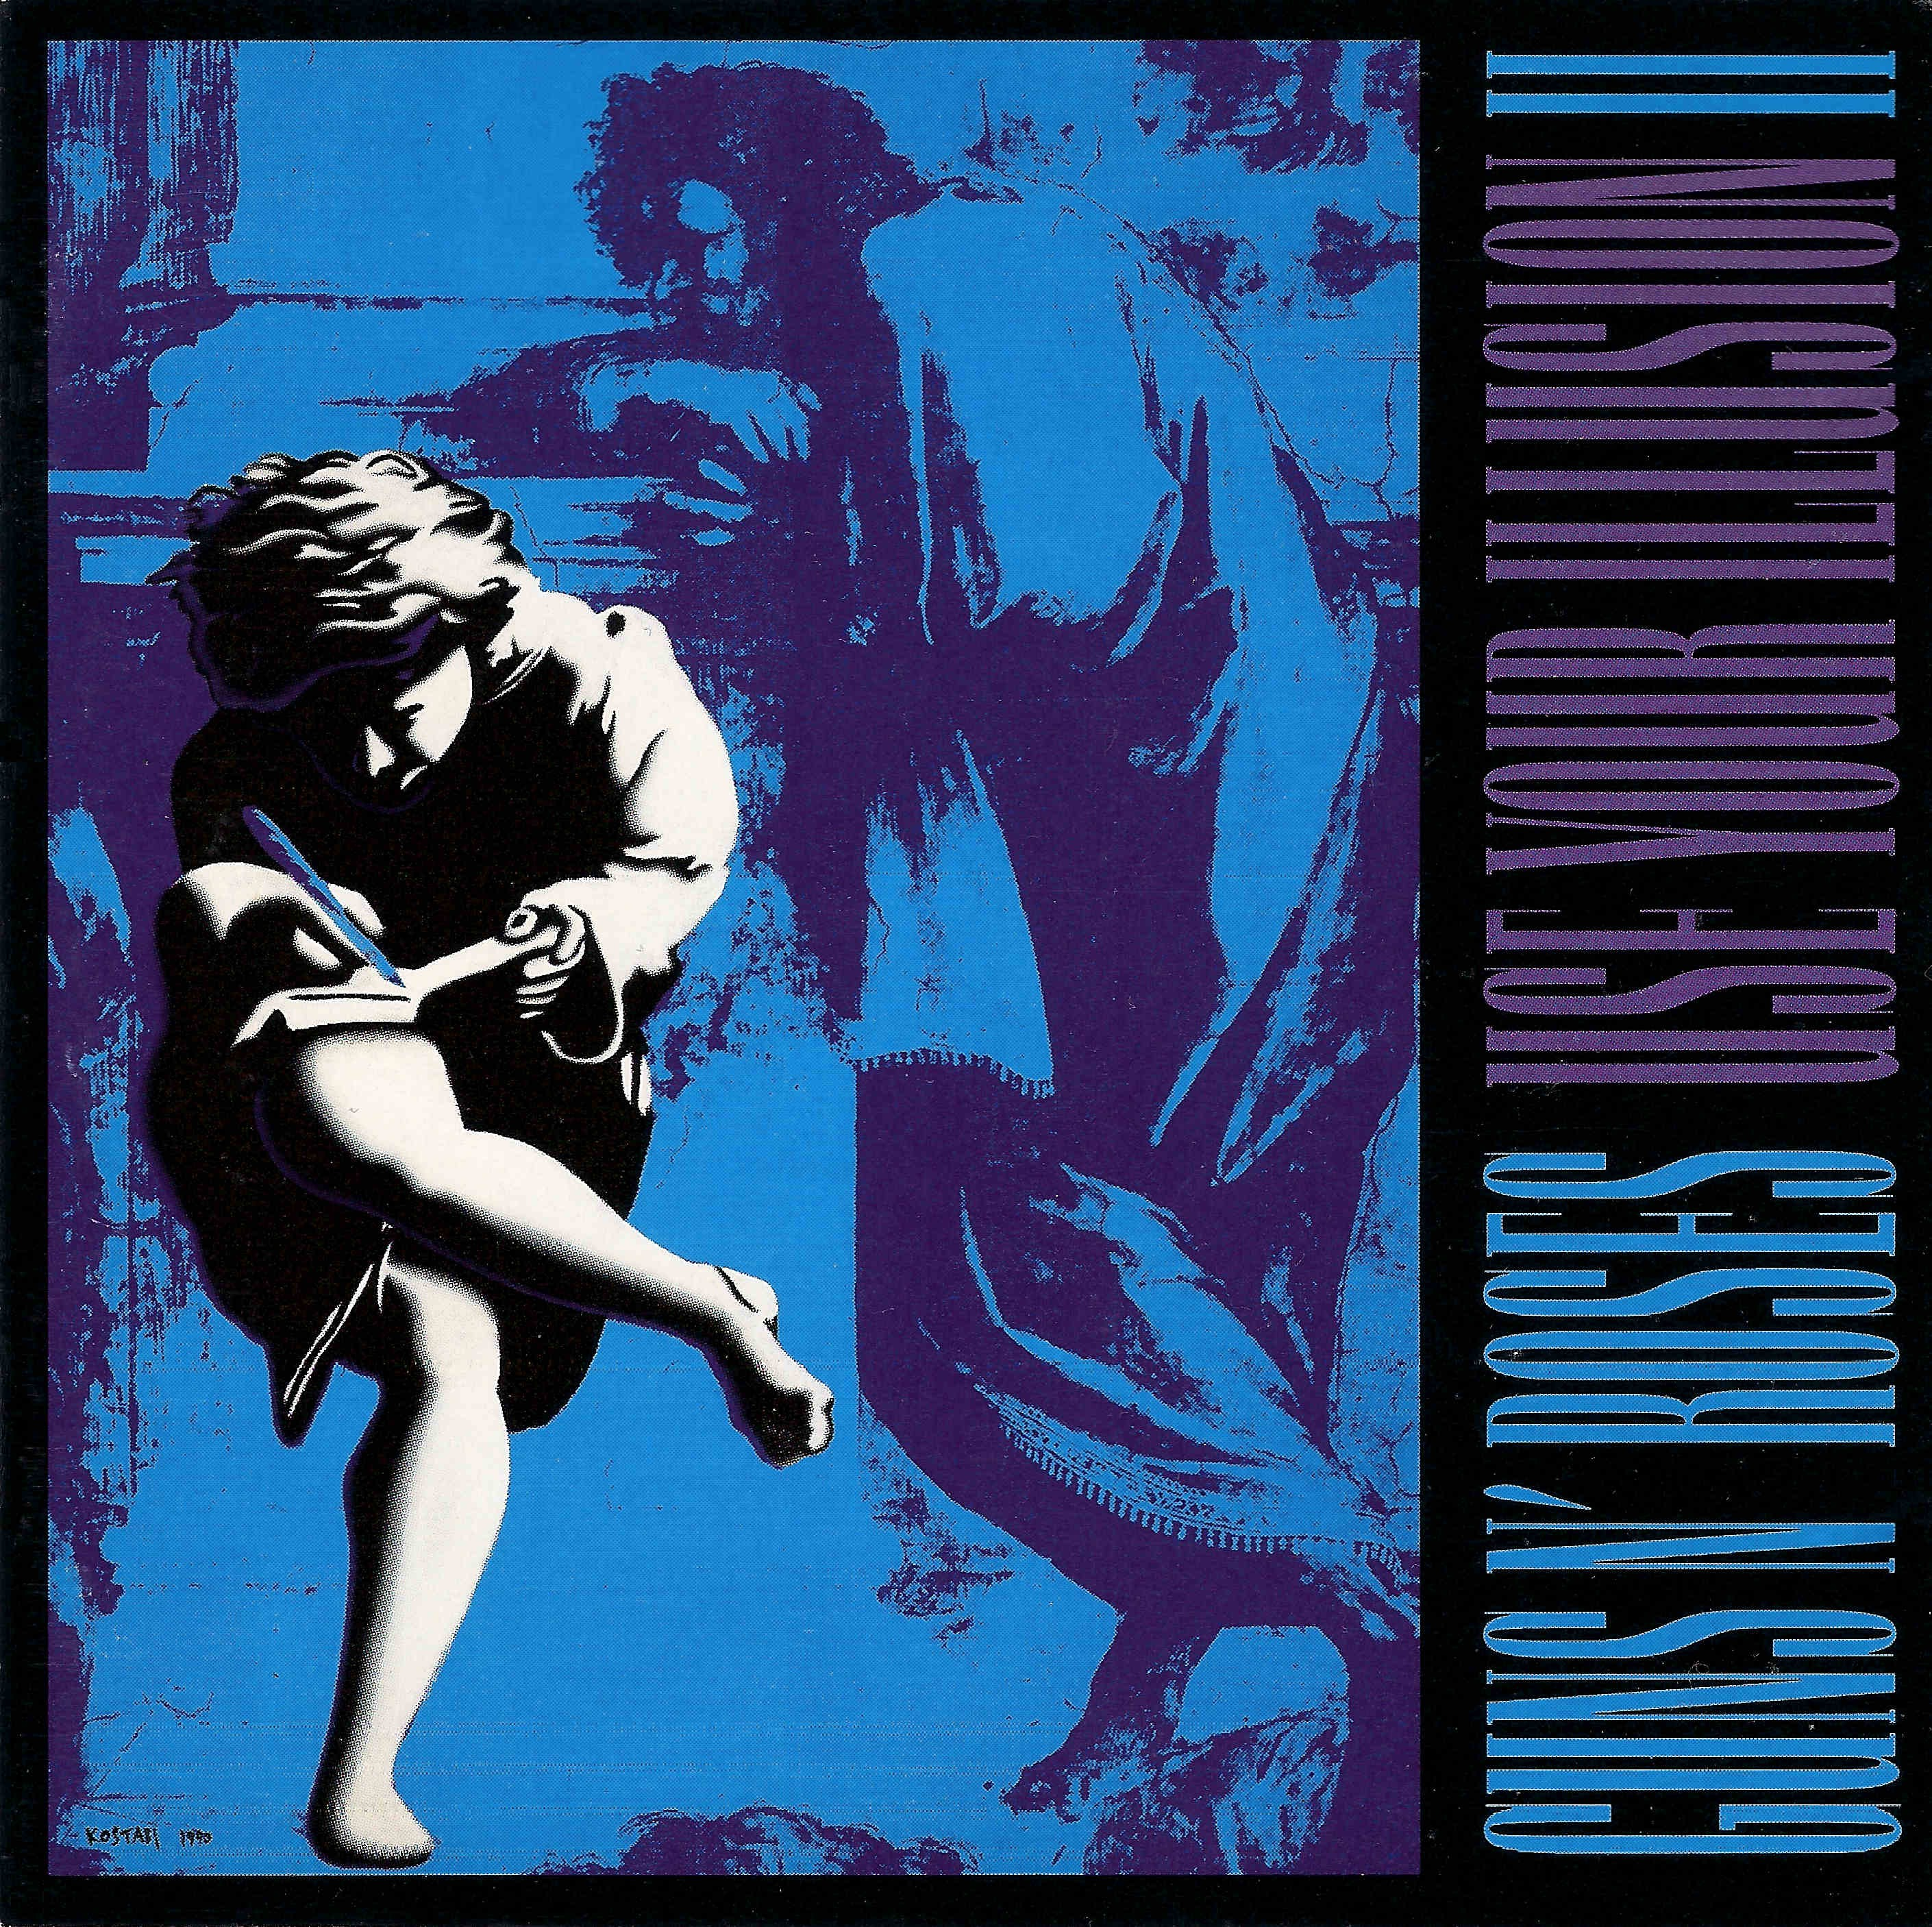 Use Your Illusions II Album Cover Raphael Guns N' Roses Painting School Of Athens